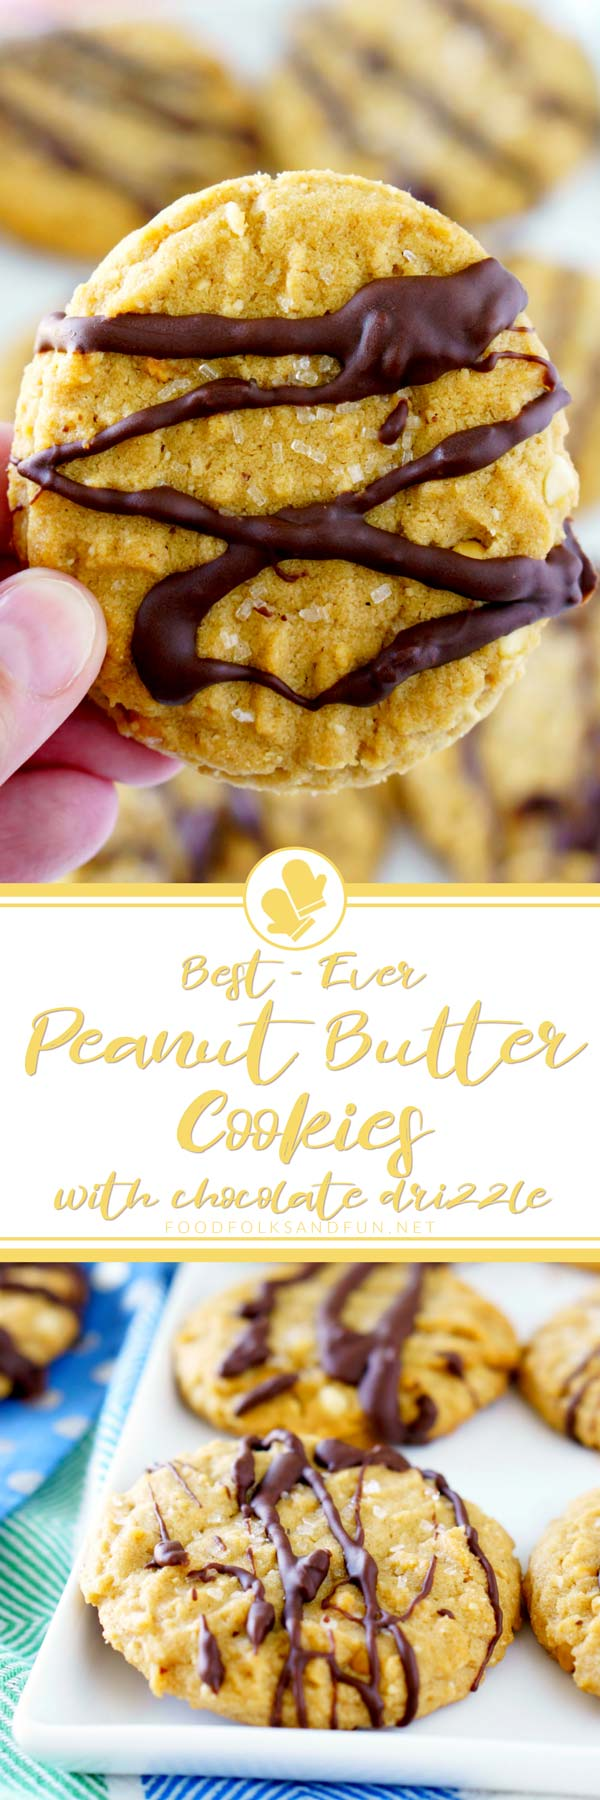 The Best-Ever Peanut Butter Cookies